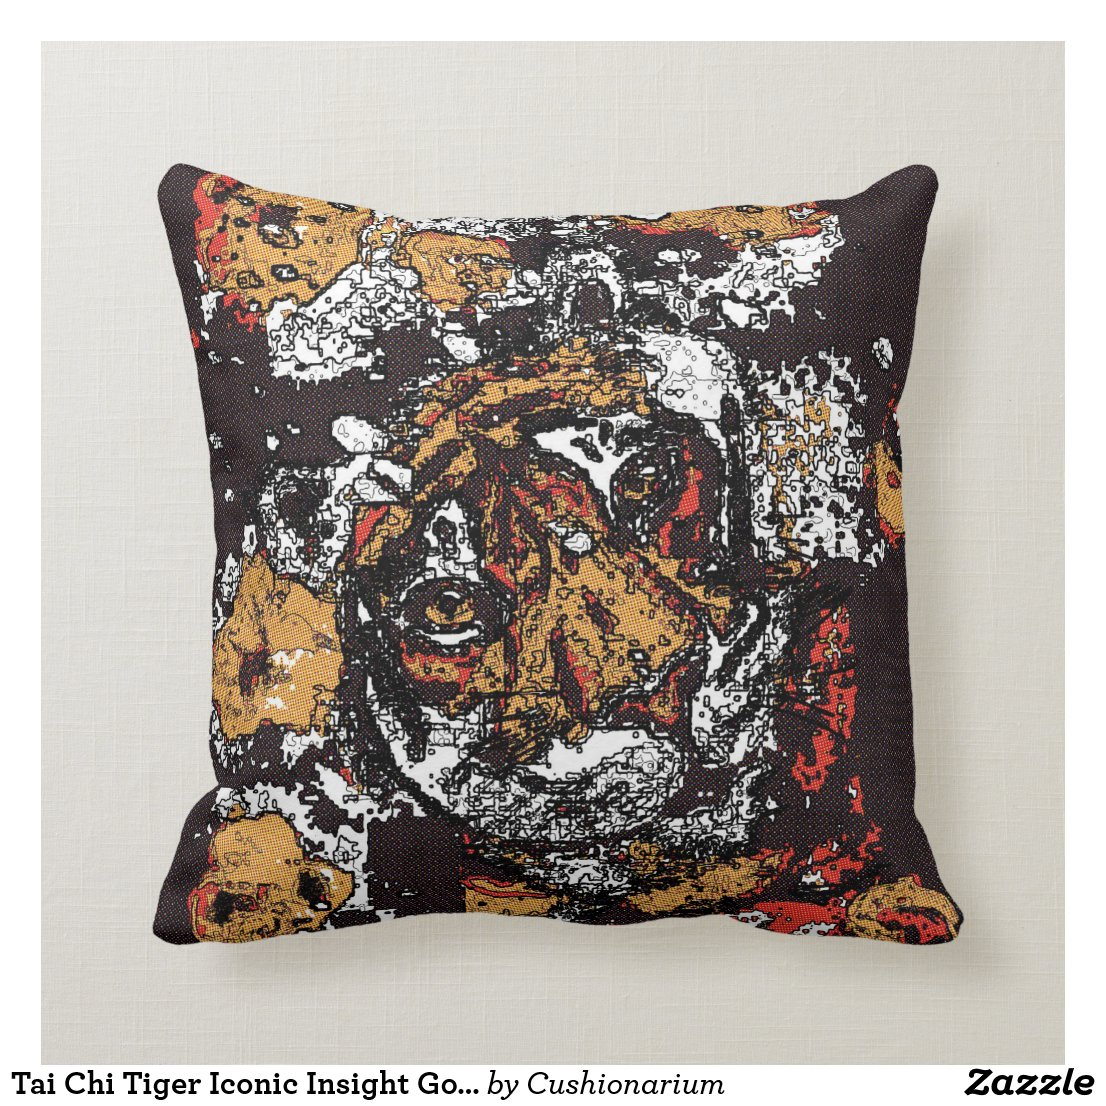 Tai Chi Tiger Iconic Insight Golden Browns Throw Pillow